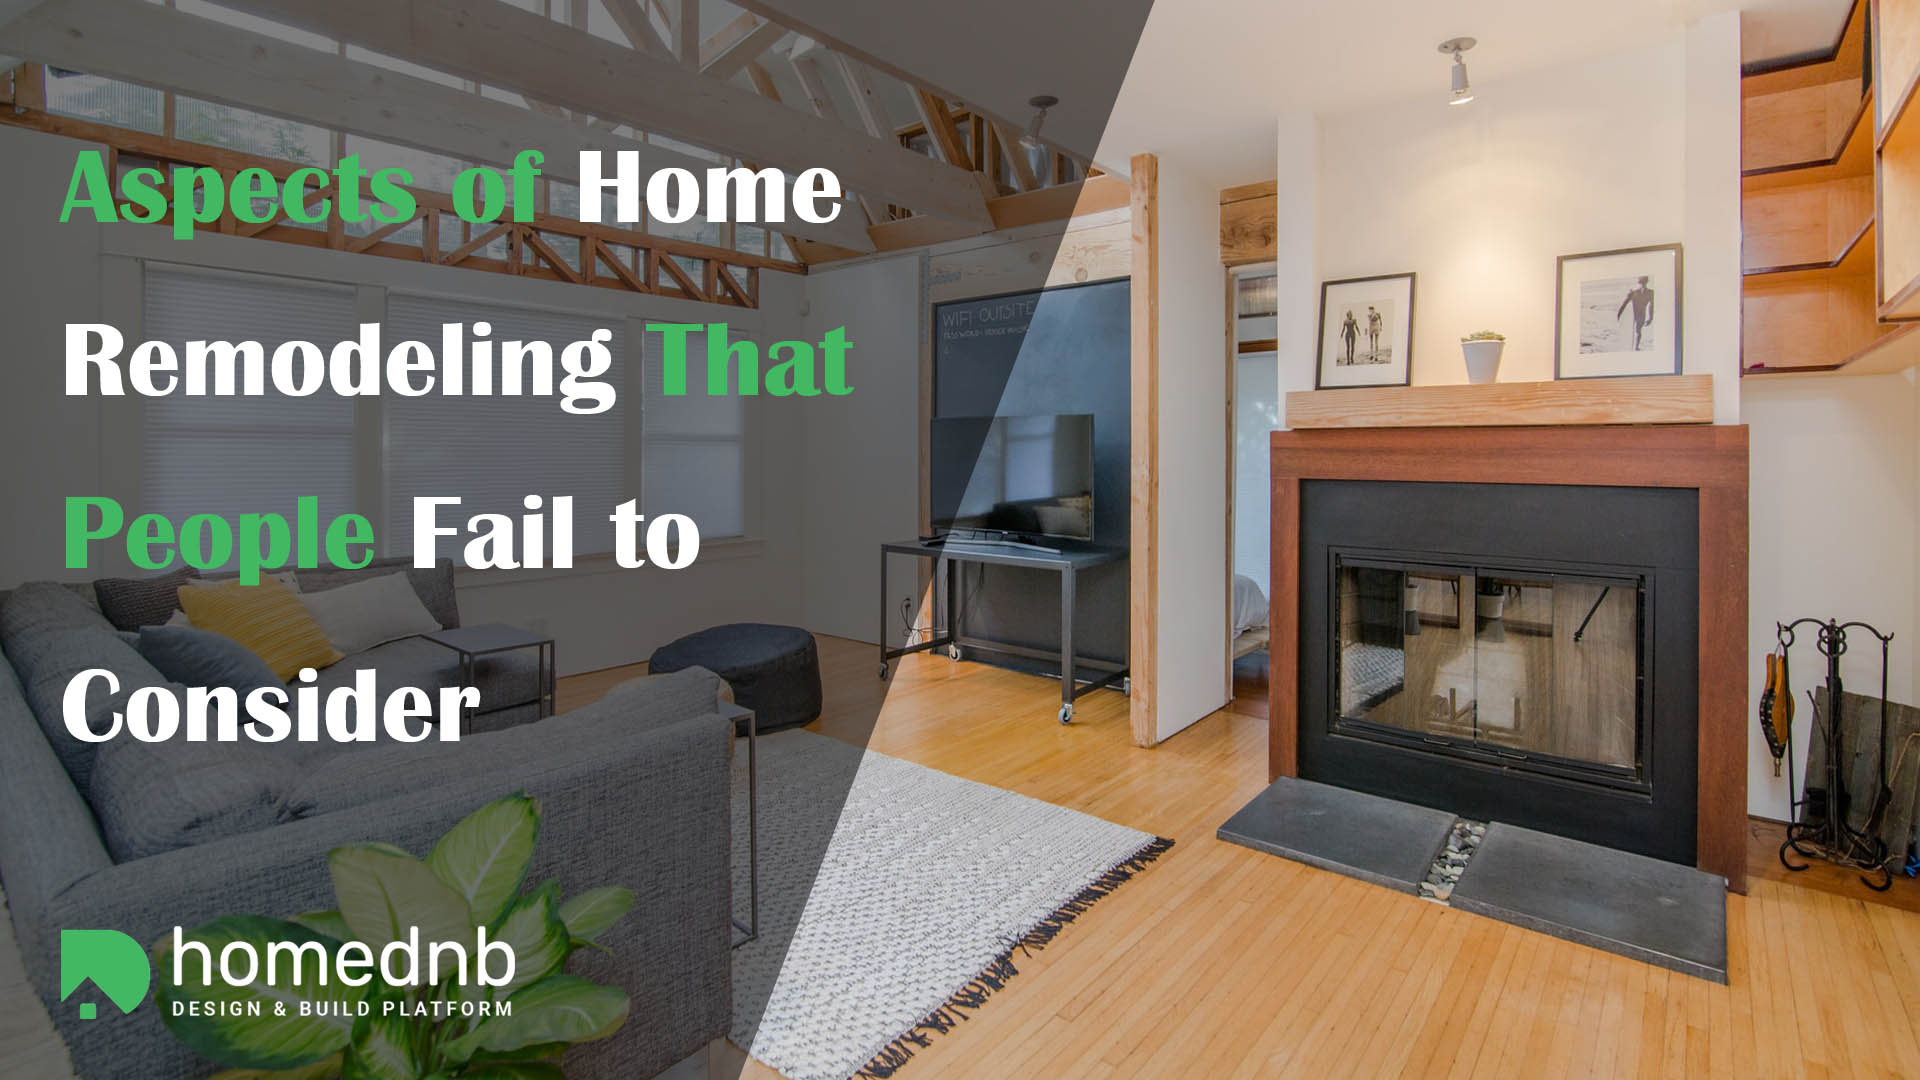 Aspects of Home Remodeling That People Fail to Consider